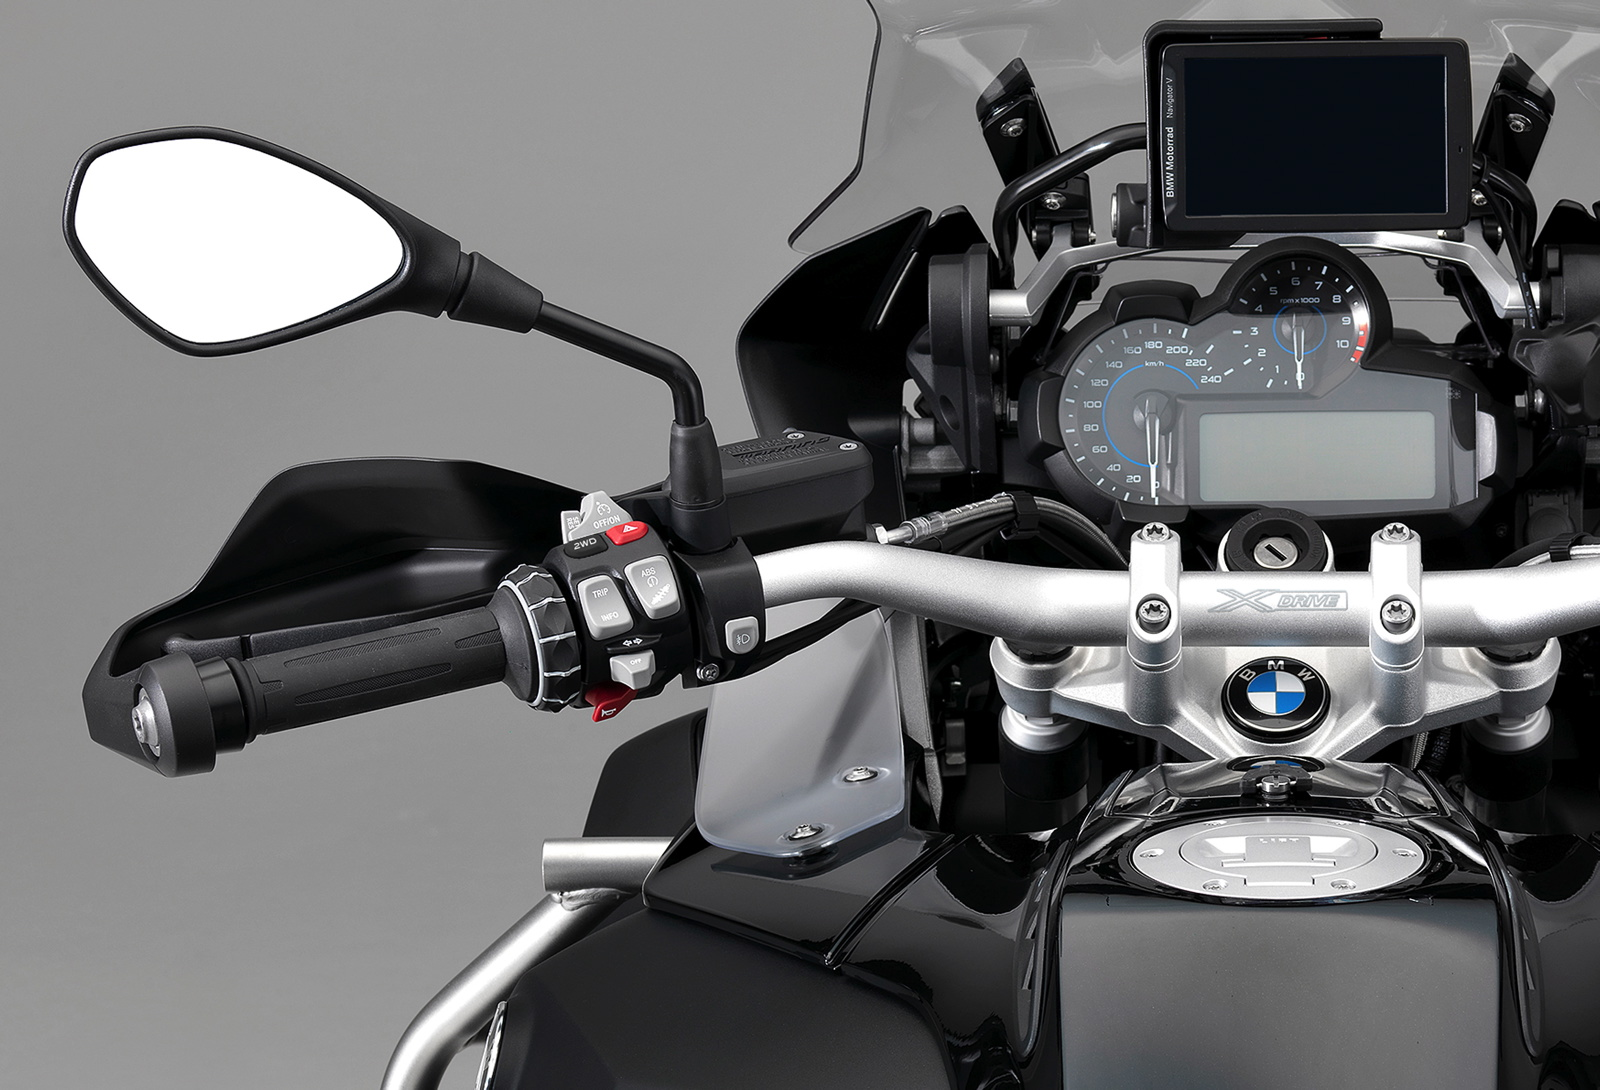 Bmw Hybrid Motorcycle 02 750x511